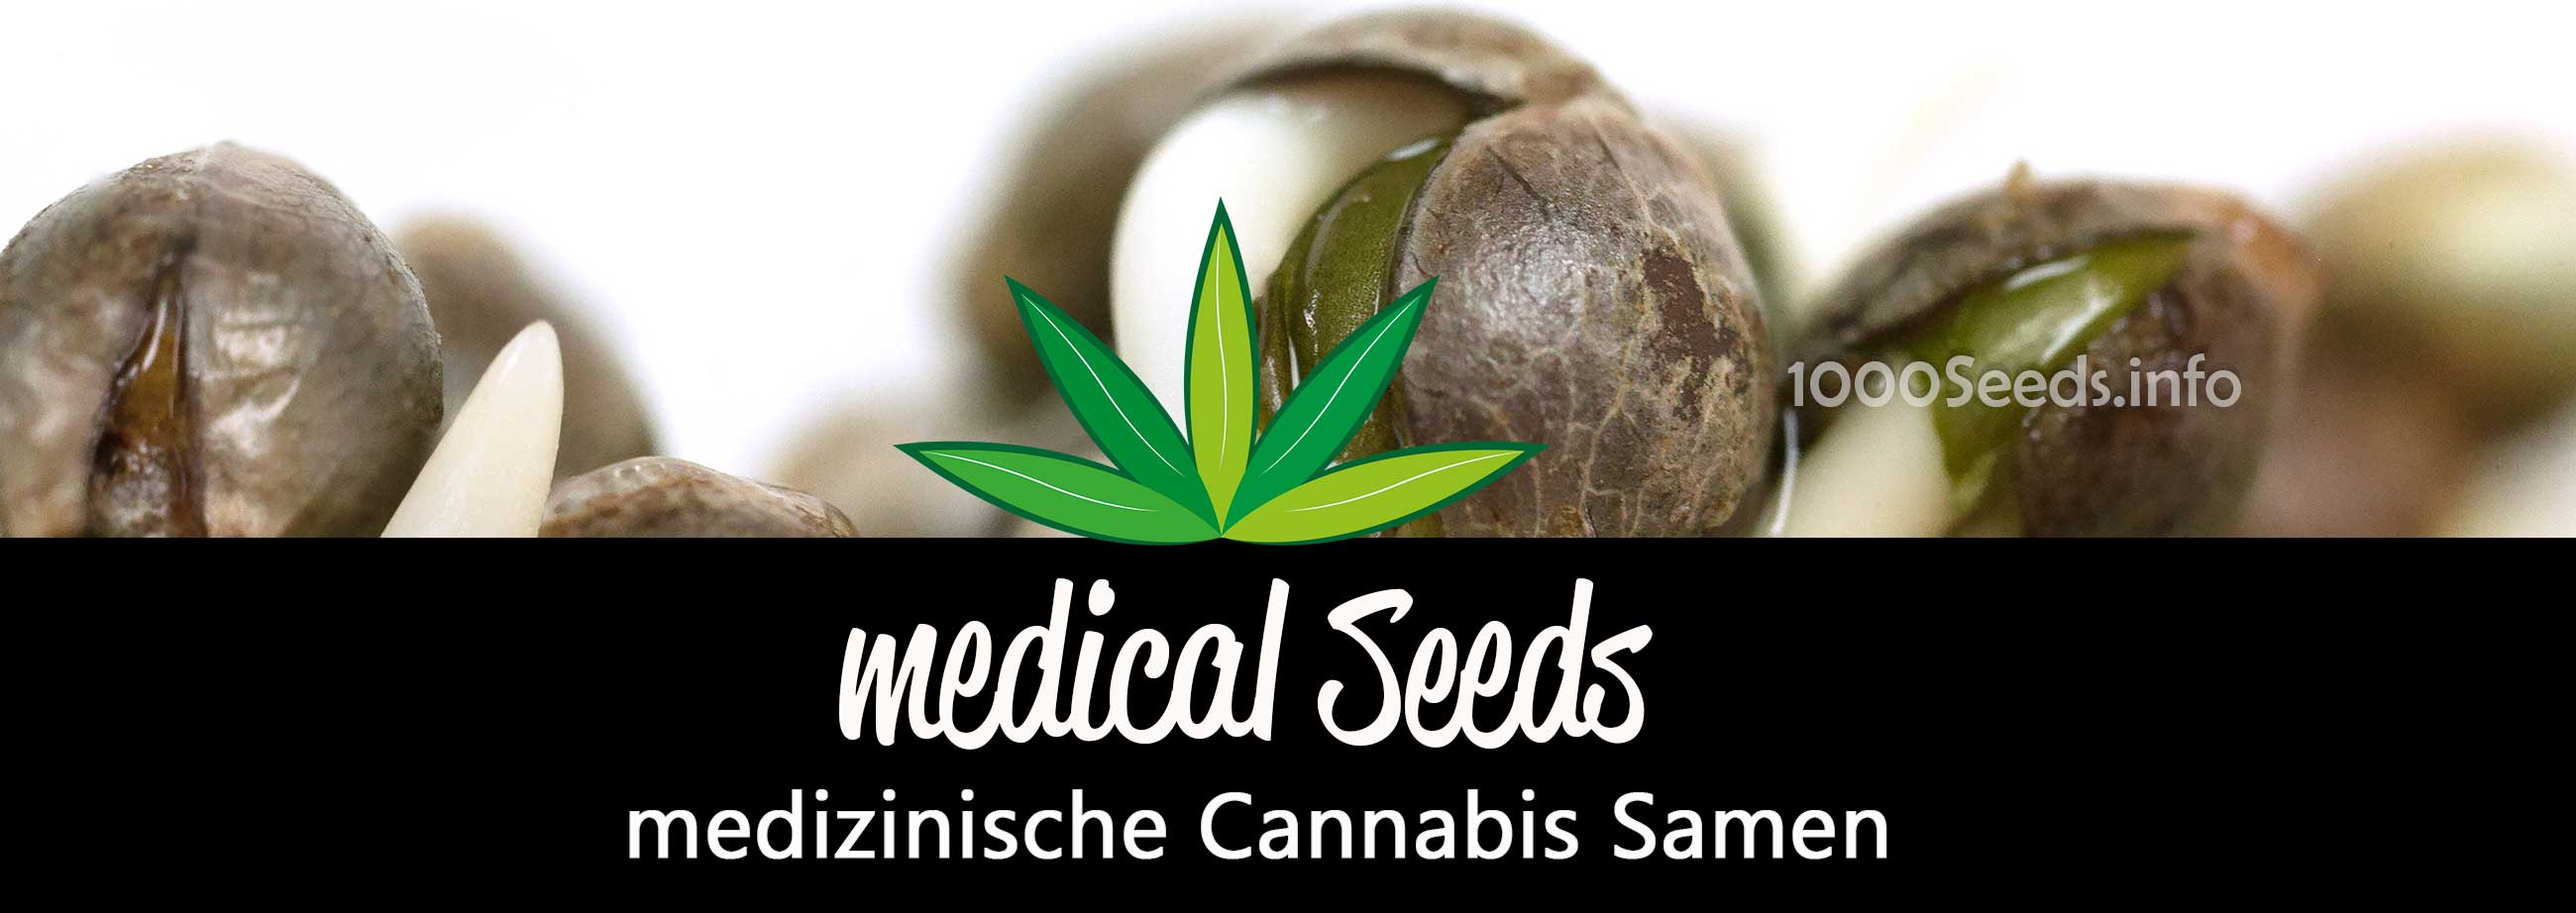 medical-Cannabis-seeds